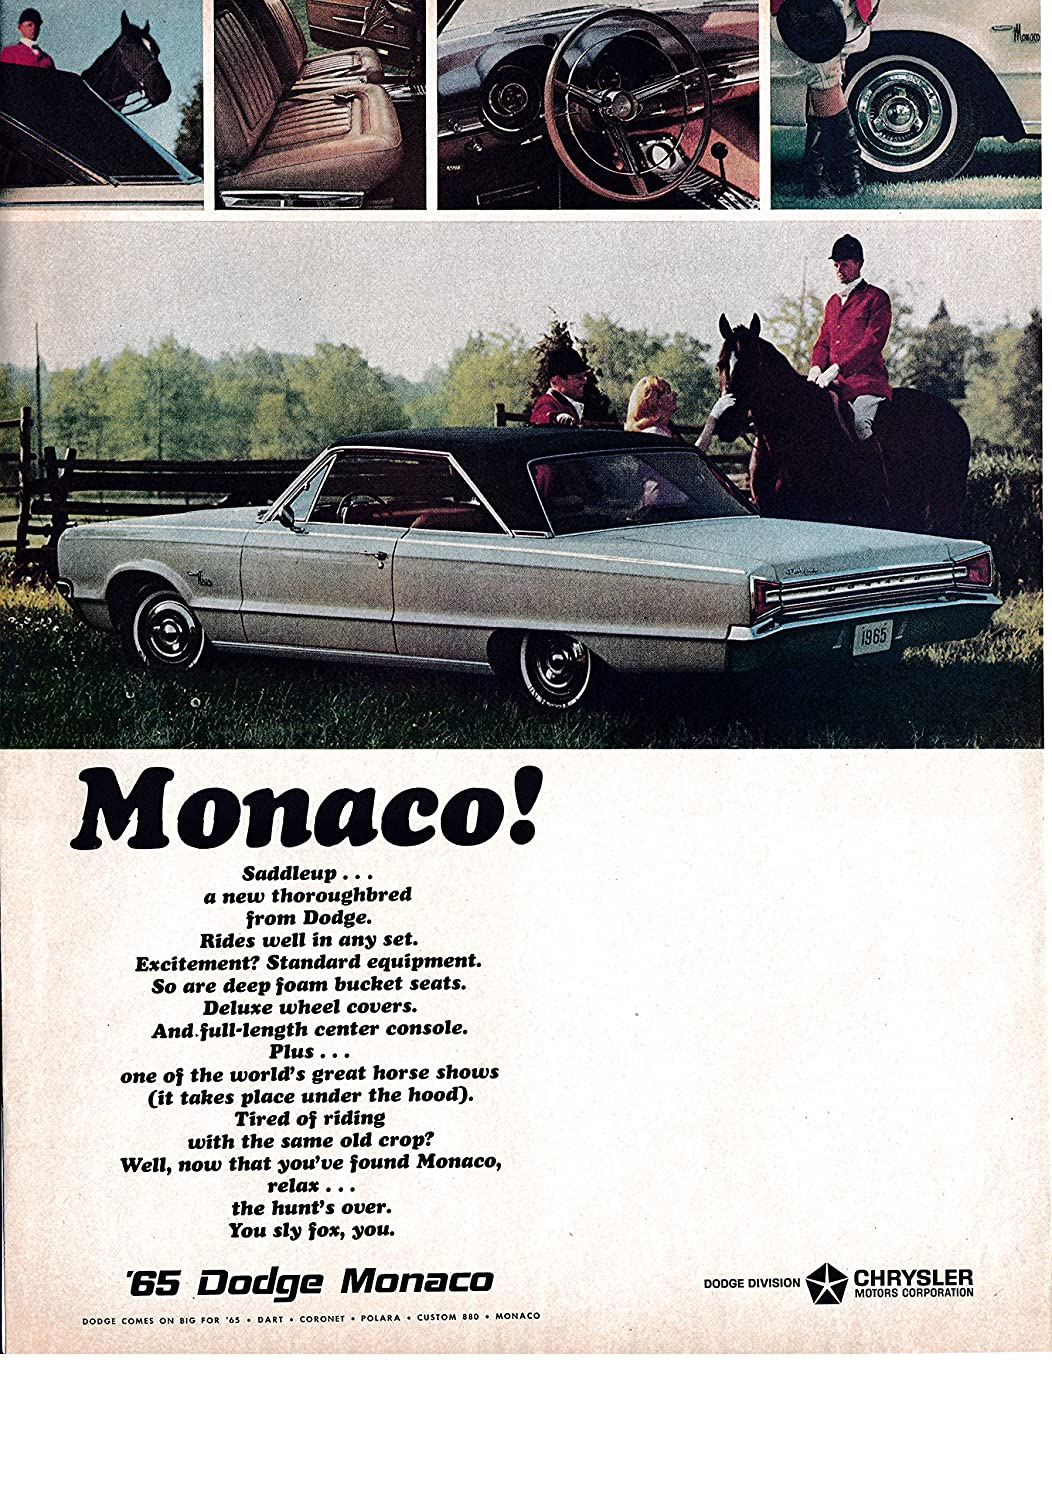 Amazon com : 1965 Dodge Monaco Original 13 5 * 10 5 Magazine Ad